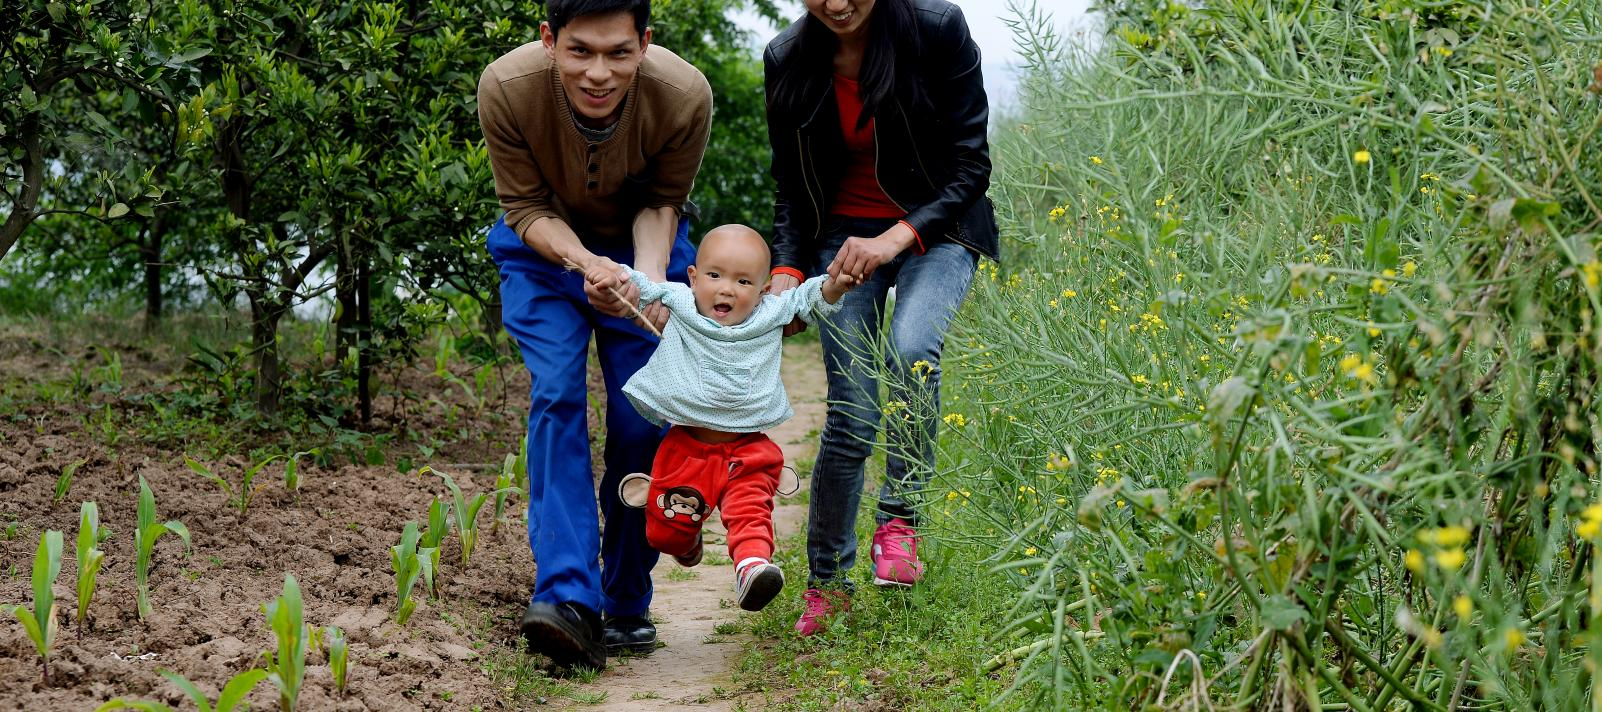 A child plays with his parents in Aijia Village, Yichang City, Hubei Province, in April 2015.